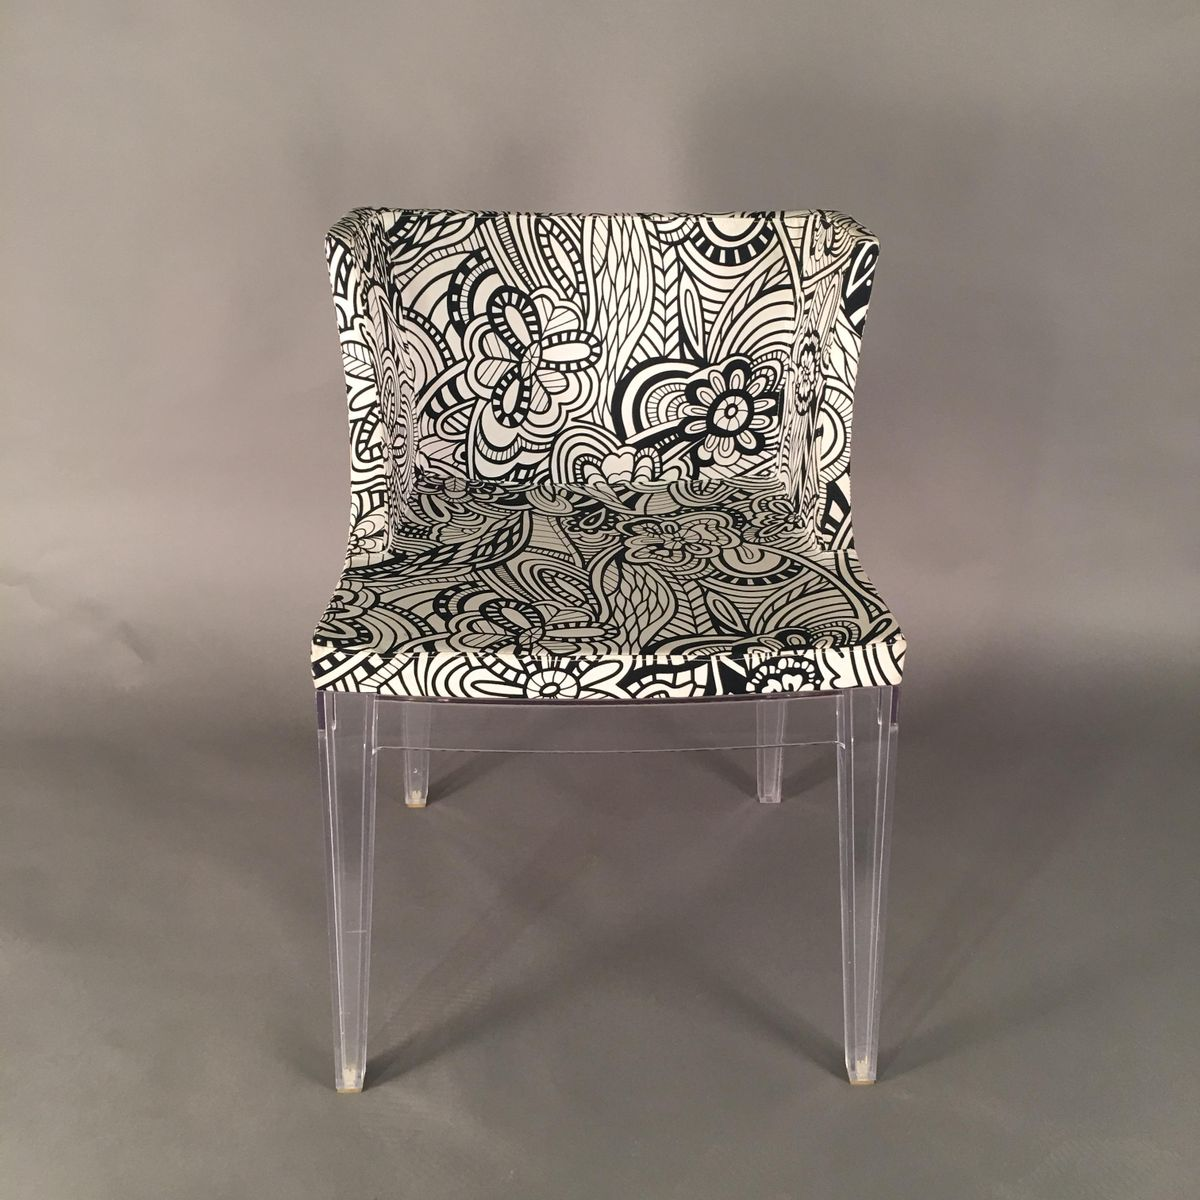 mademoiselle chair by philippe starck for kartell 2000s for sale at